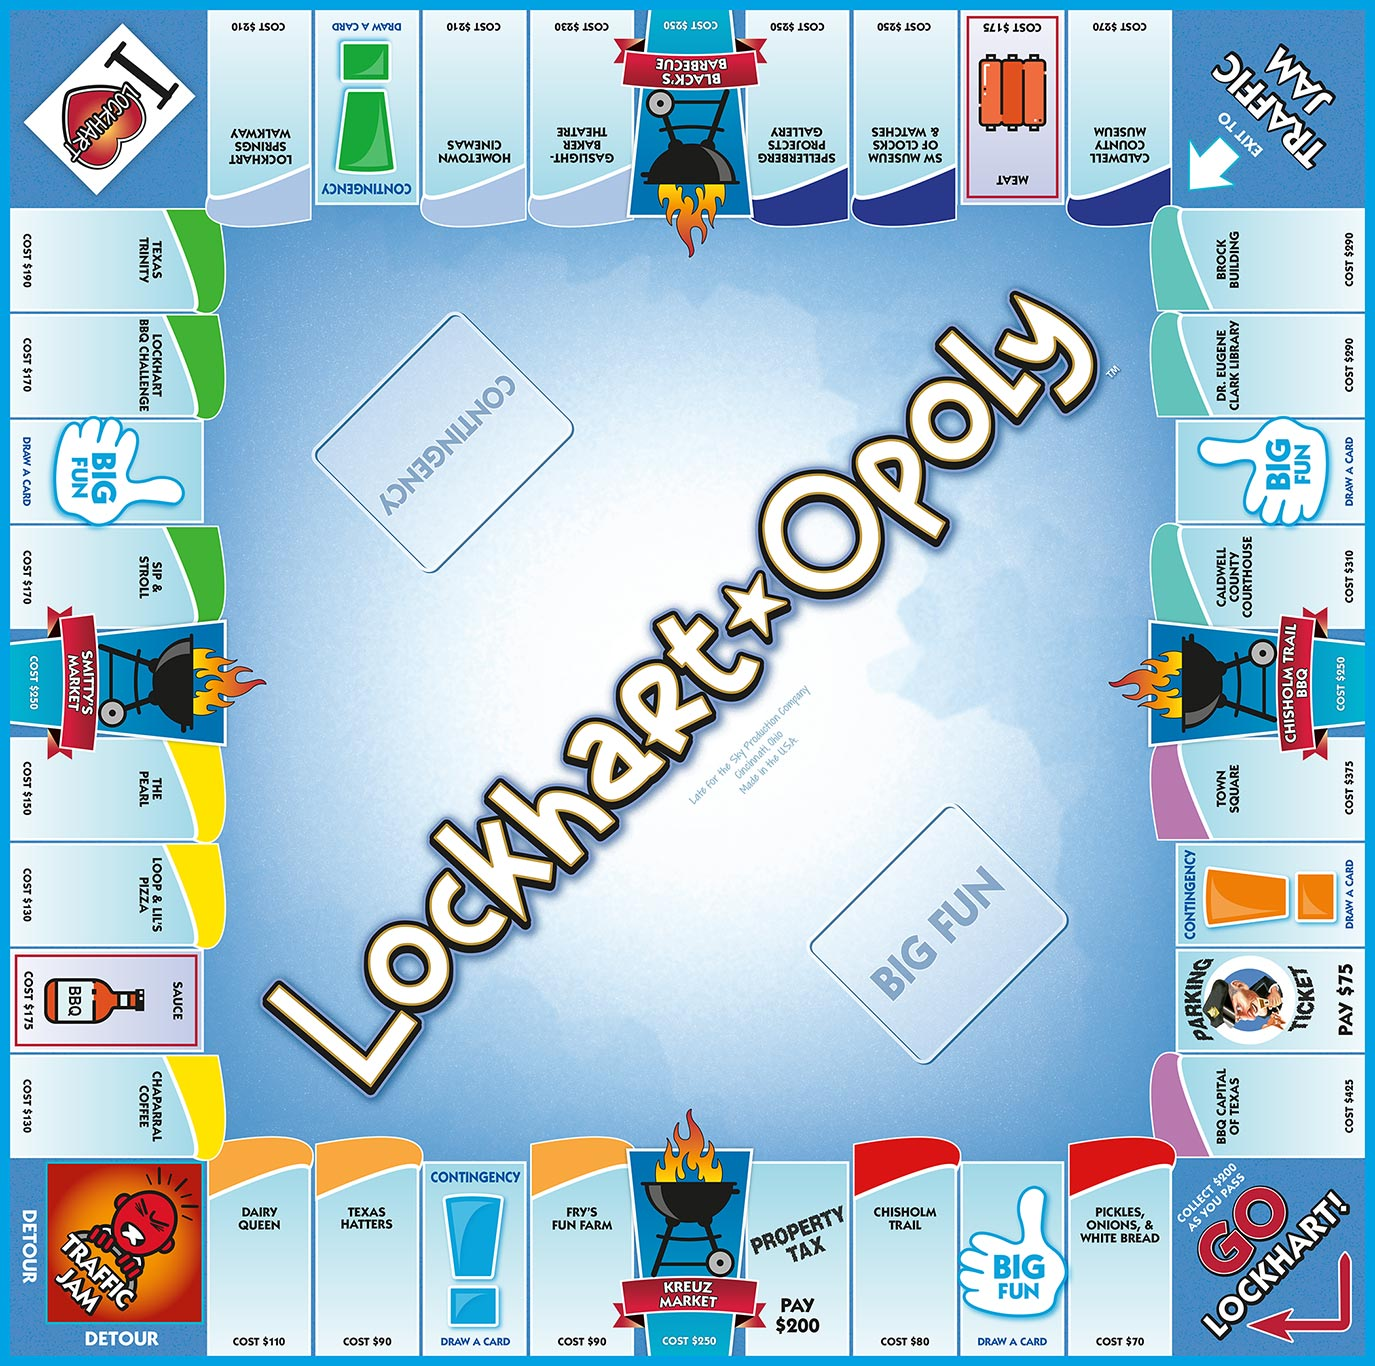 LOCKHART-OPOLY Board Game